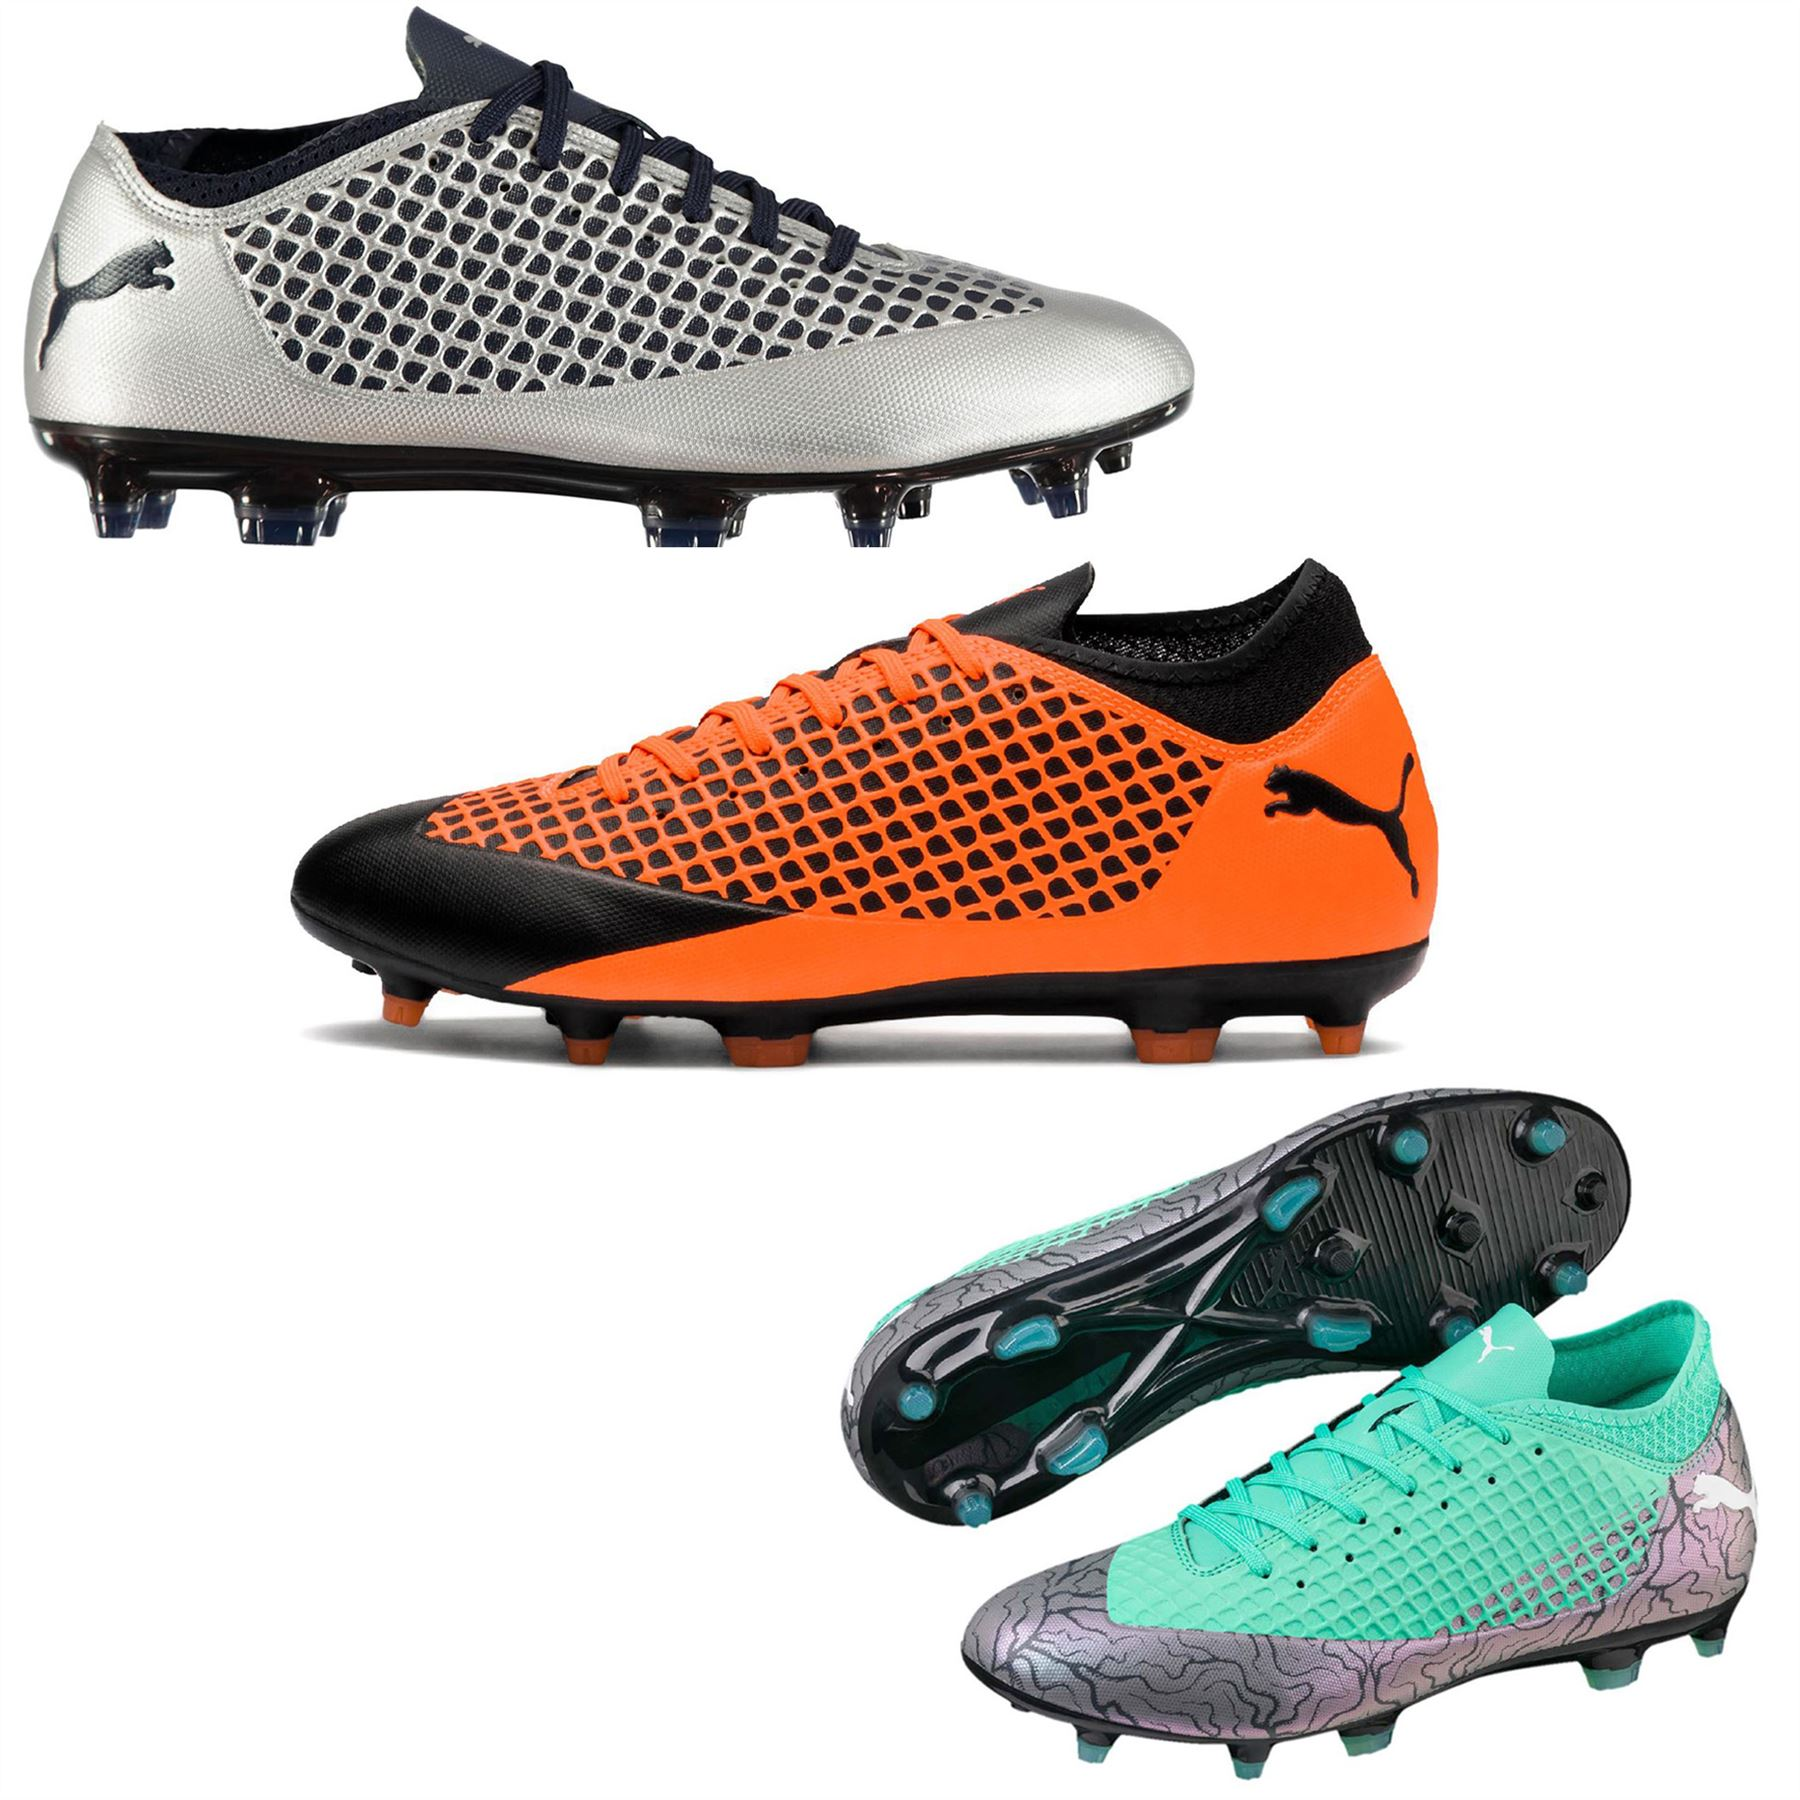 ff9dacdd ... Puma Future 2.4 FG Firm Ground Football Boots Mens Soccer Shoes Cleats  ...